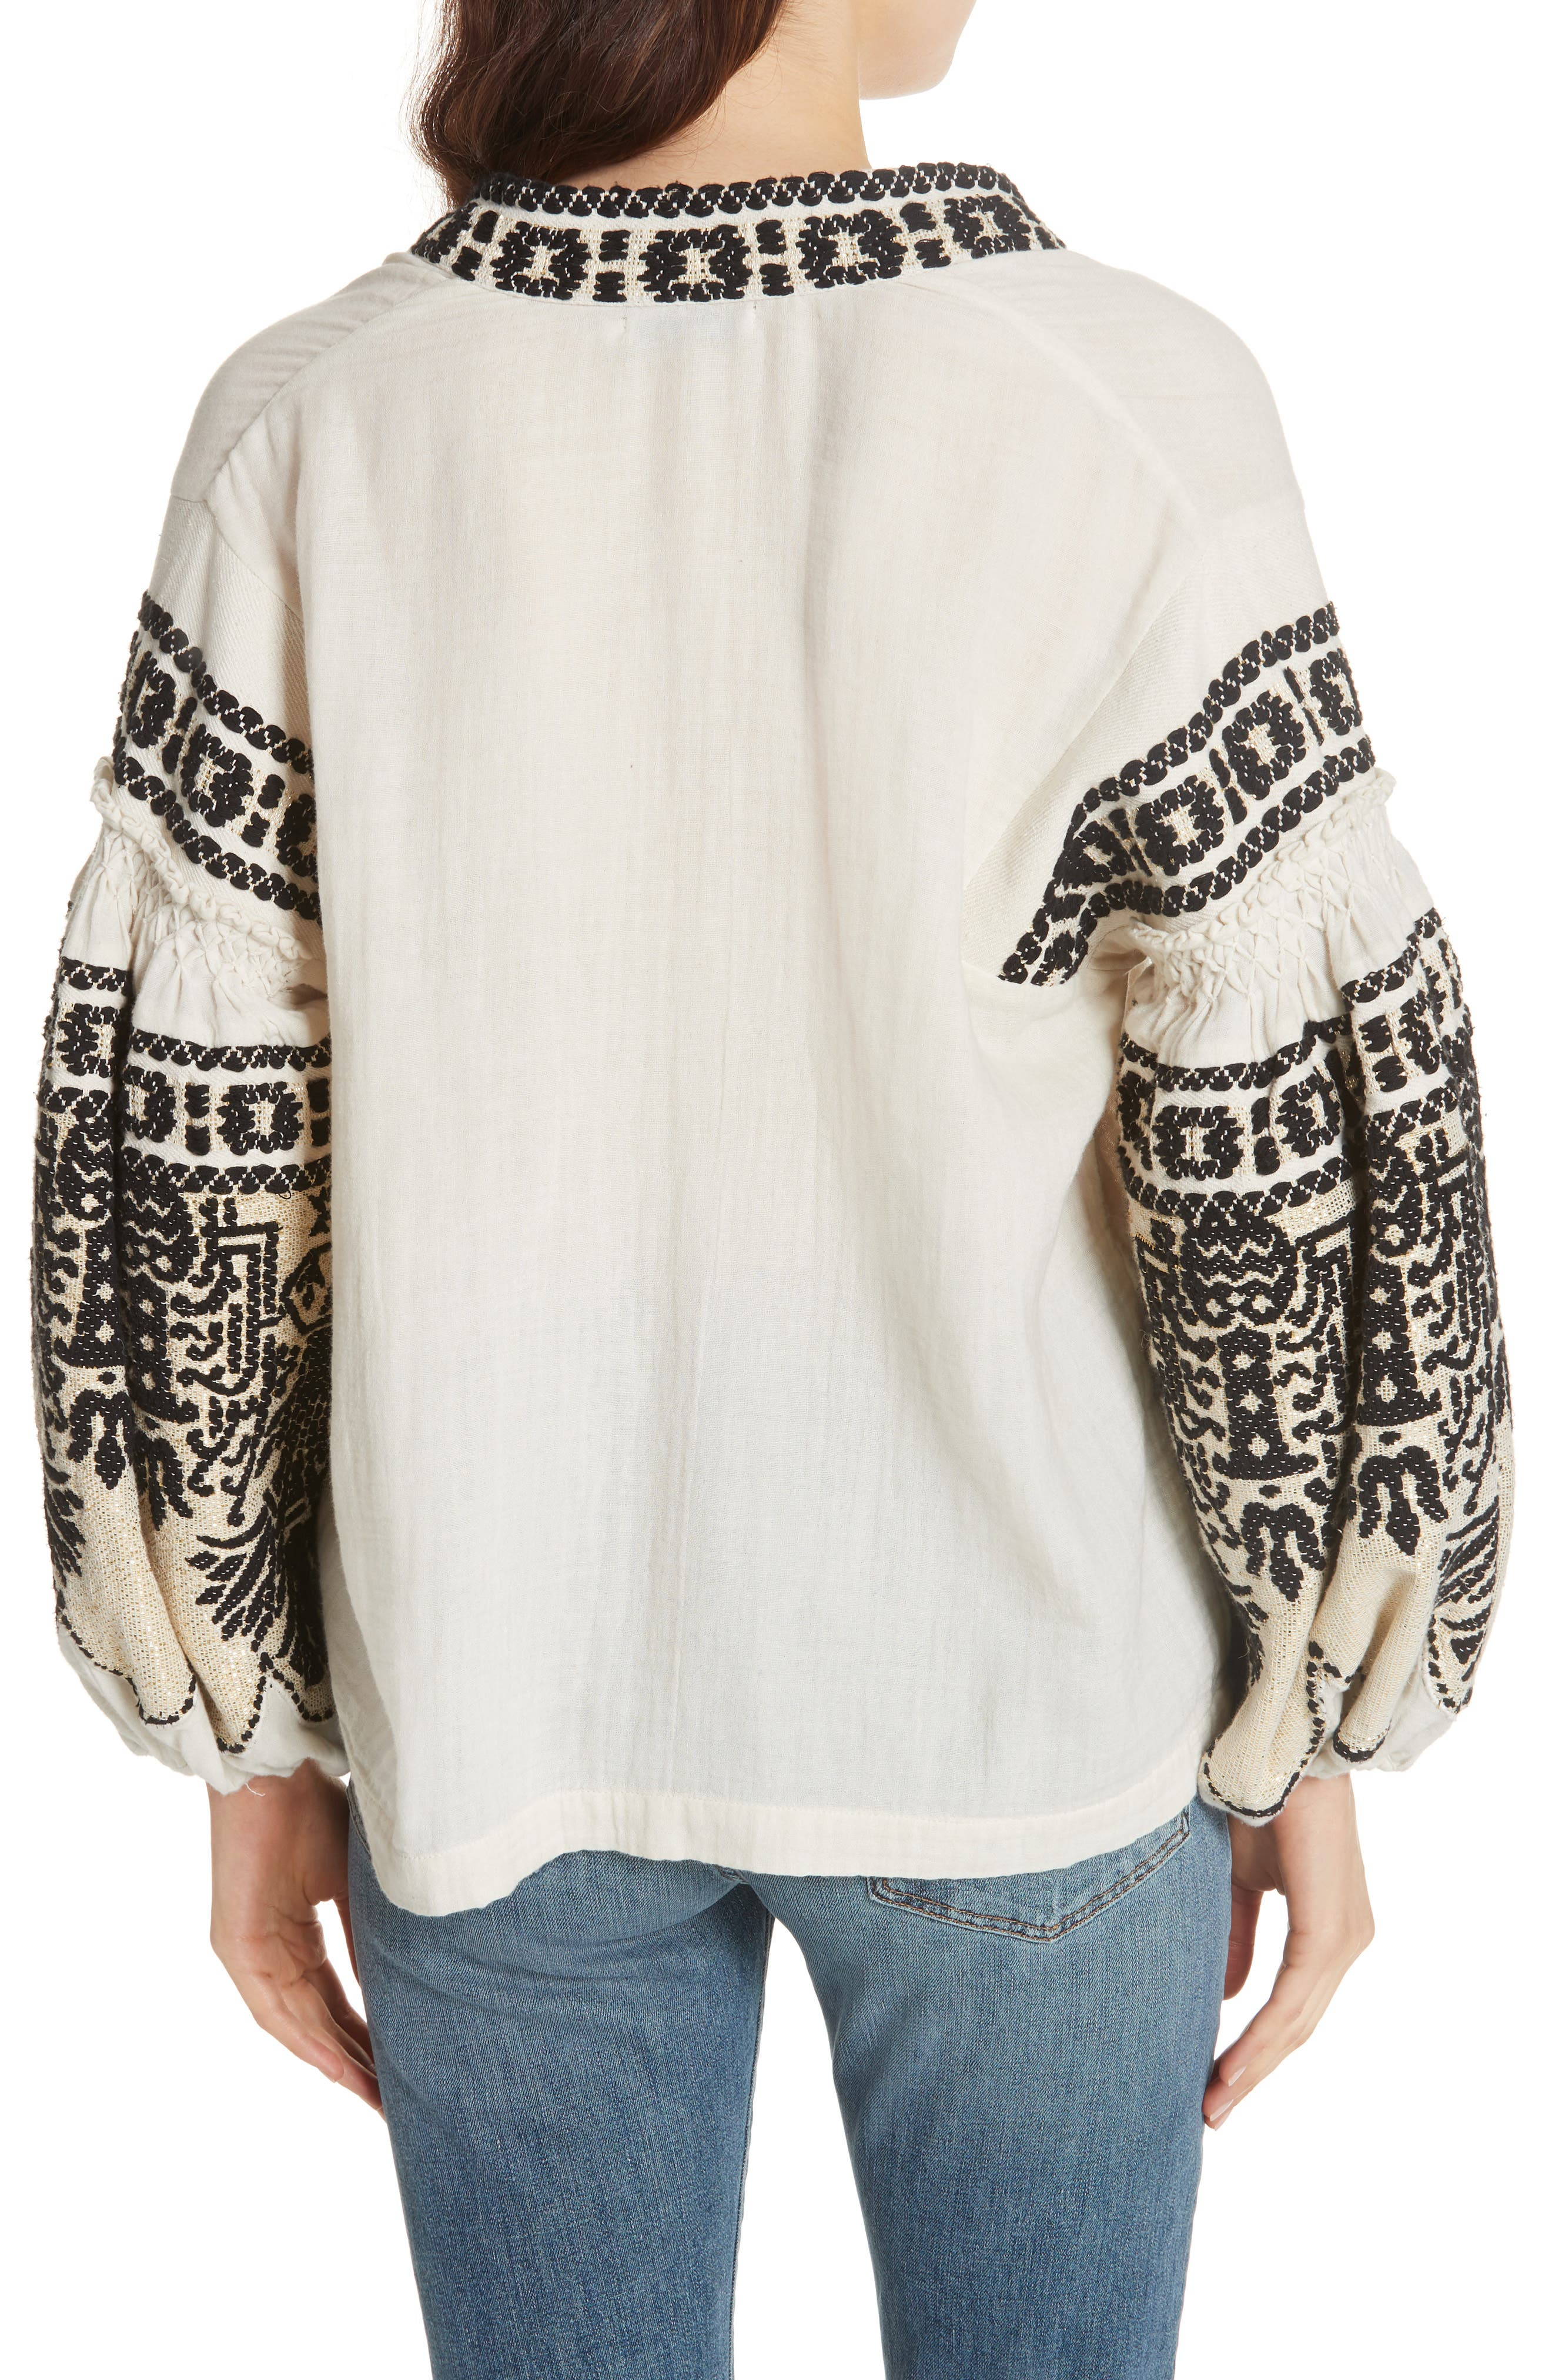 Petra Embroidered Blouse,                             Alternate thumbnail 2, color,                             IVORY